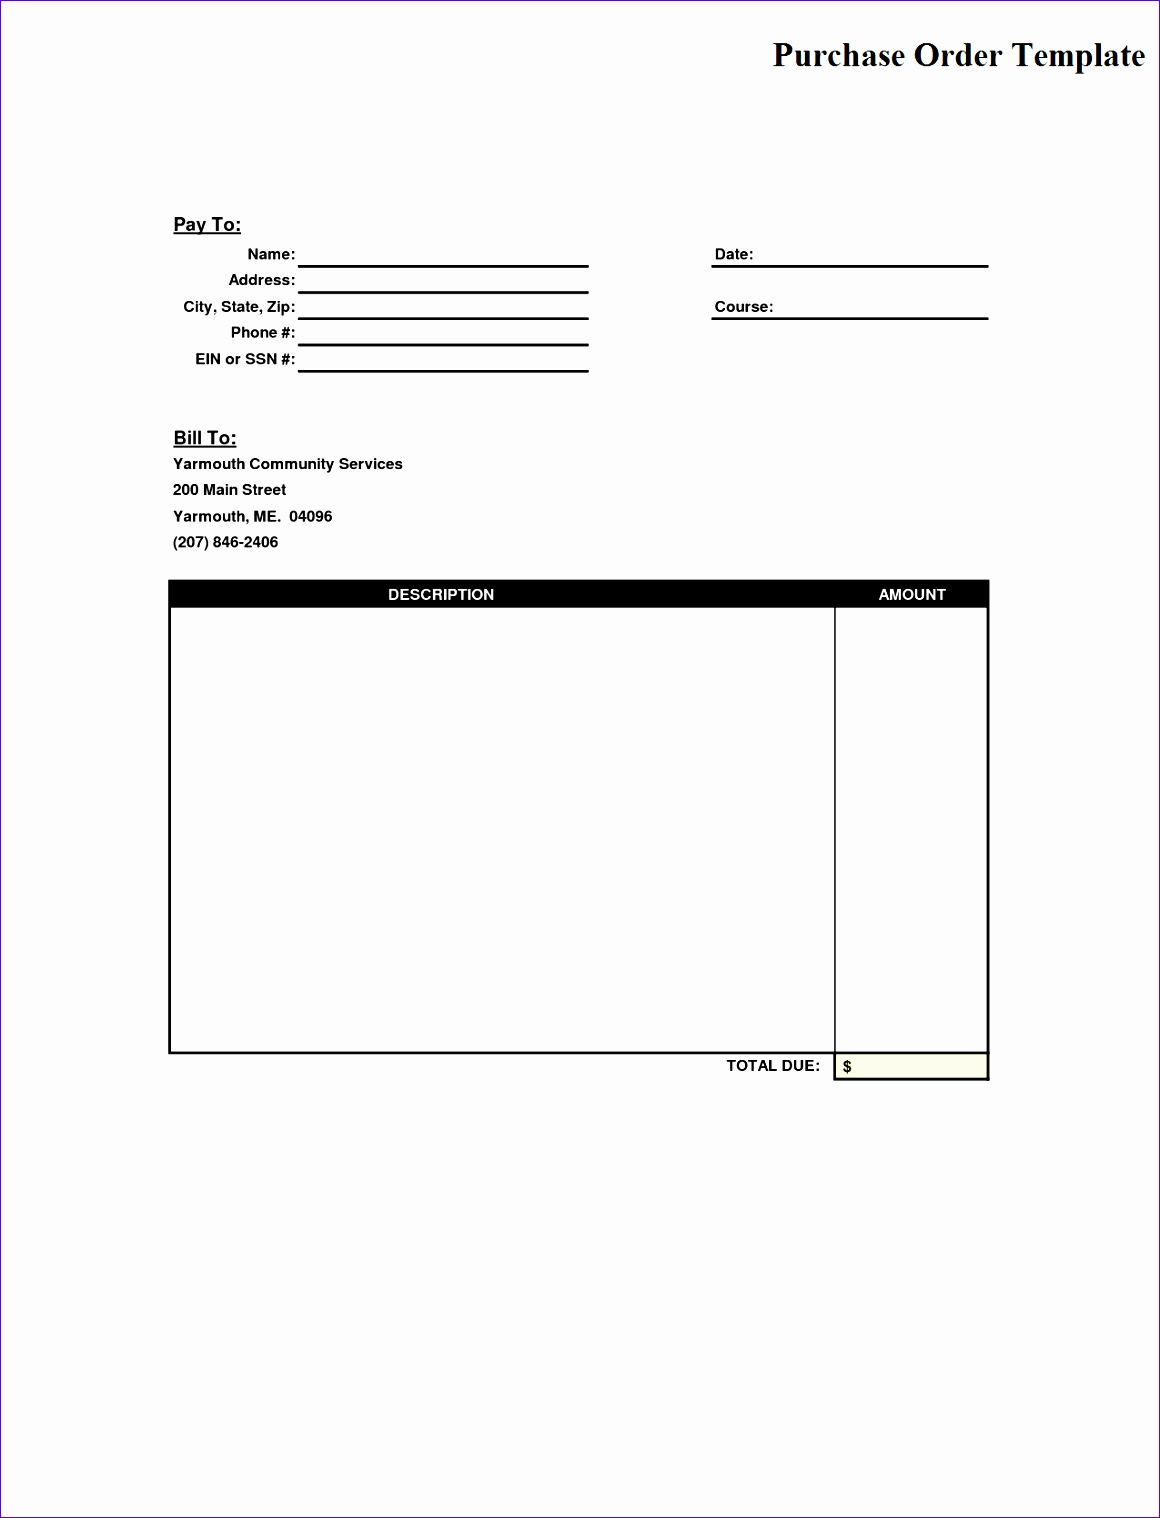 Purchase Order Template Pdf 1